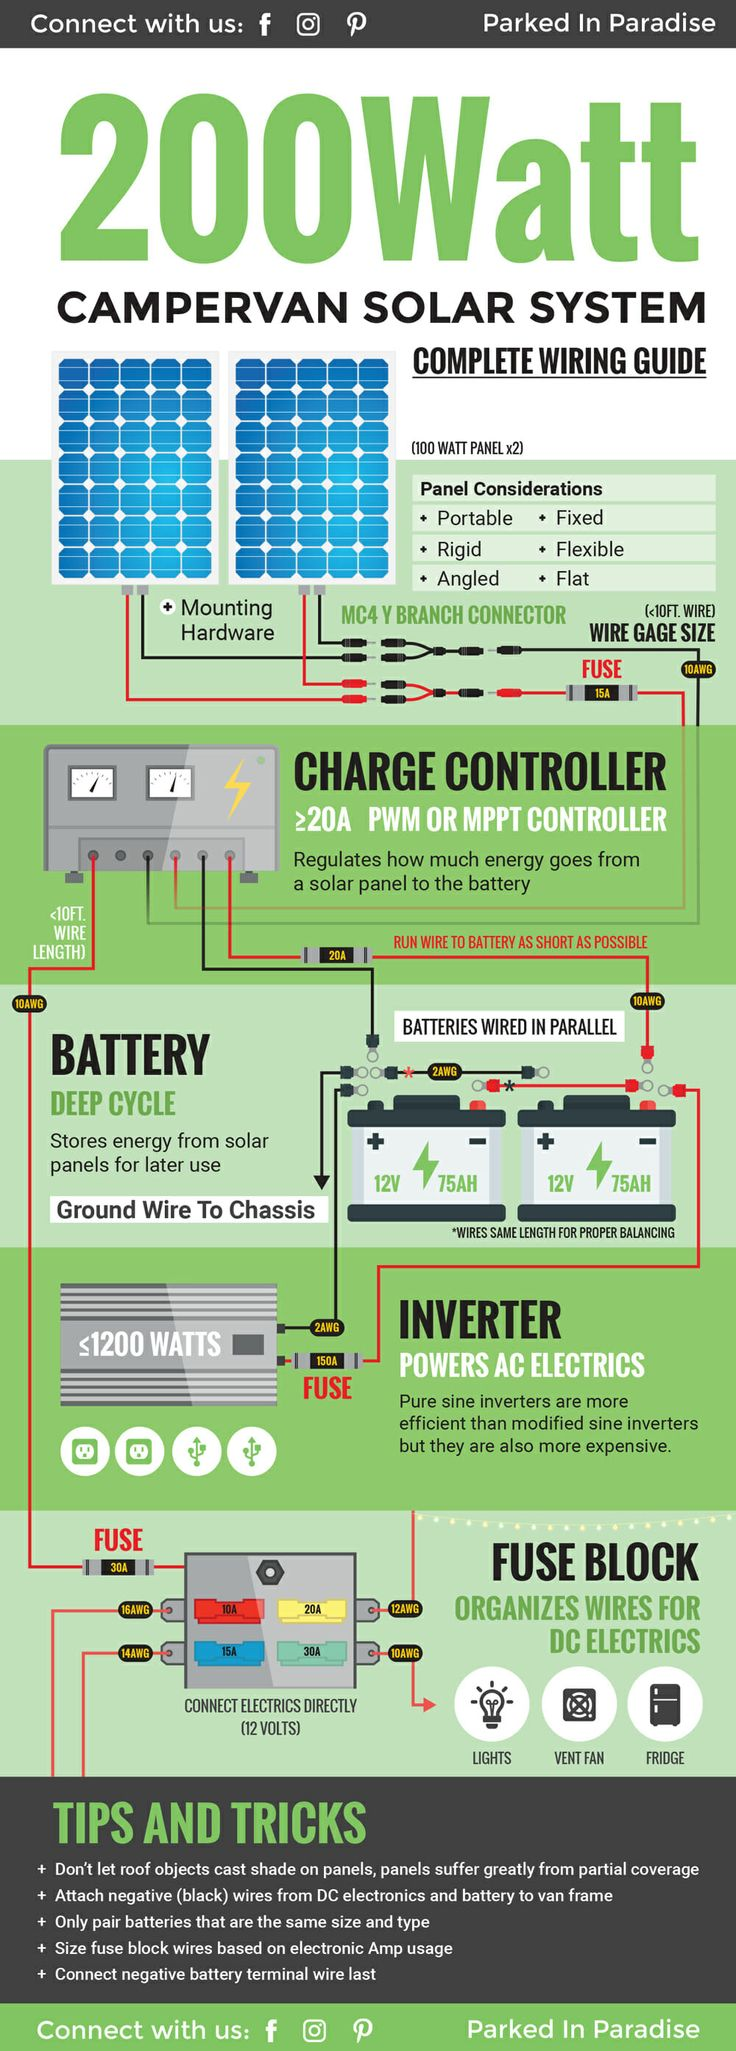 Complete DIY wiring guide for a 200 watt solar panel system. Perfect for a campervan build! I need to save this for when I start my own van build! #vanlife via @parkedinparadise